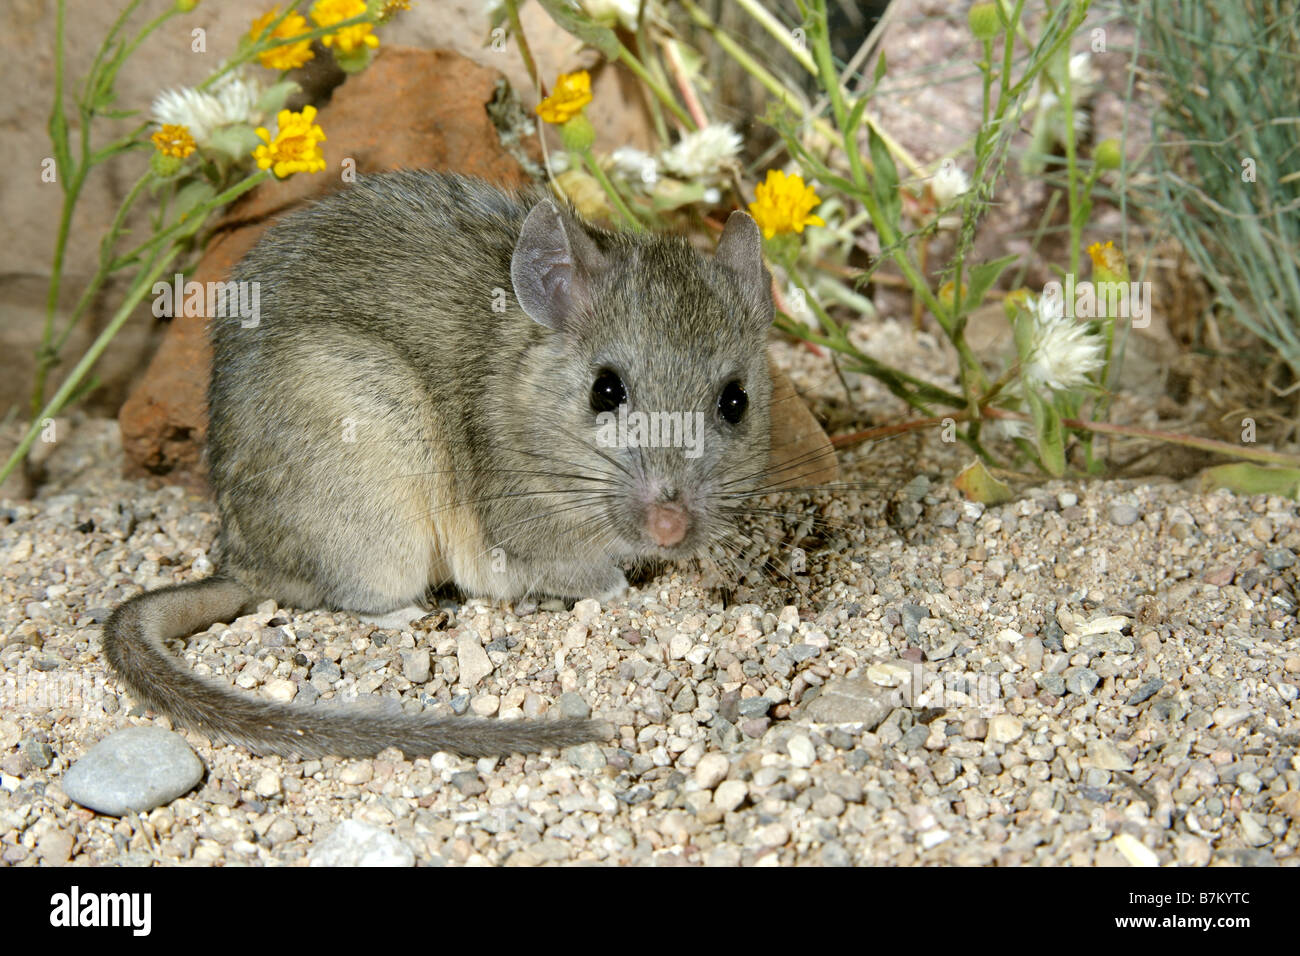 Western White-throated Woodrat - Stock Image